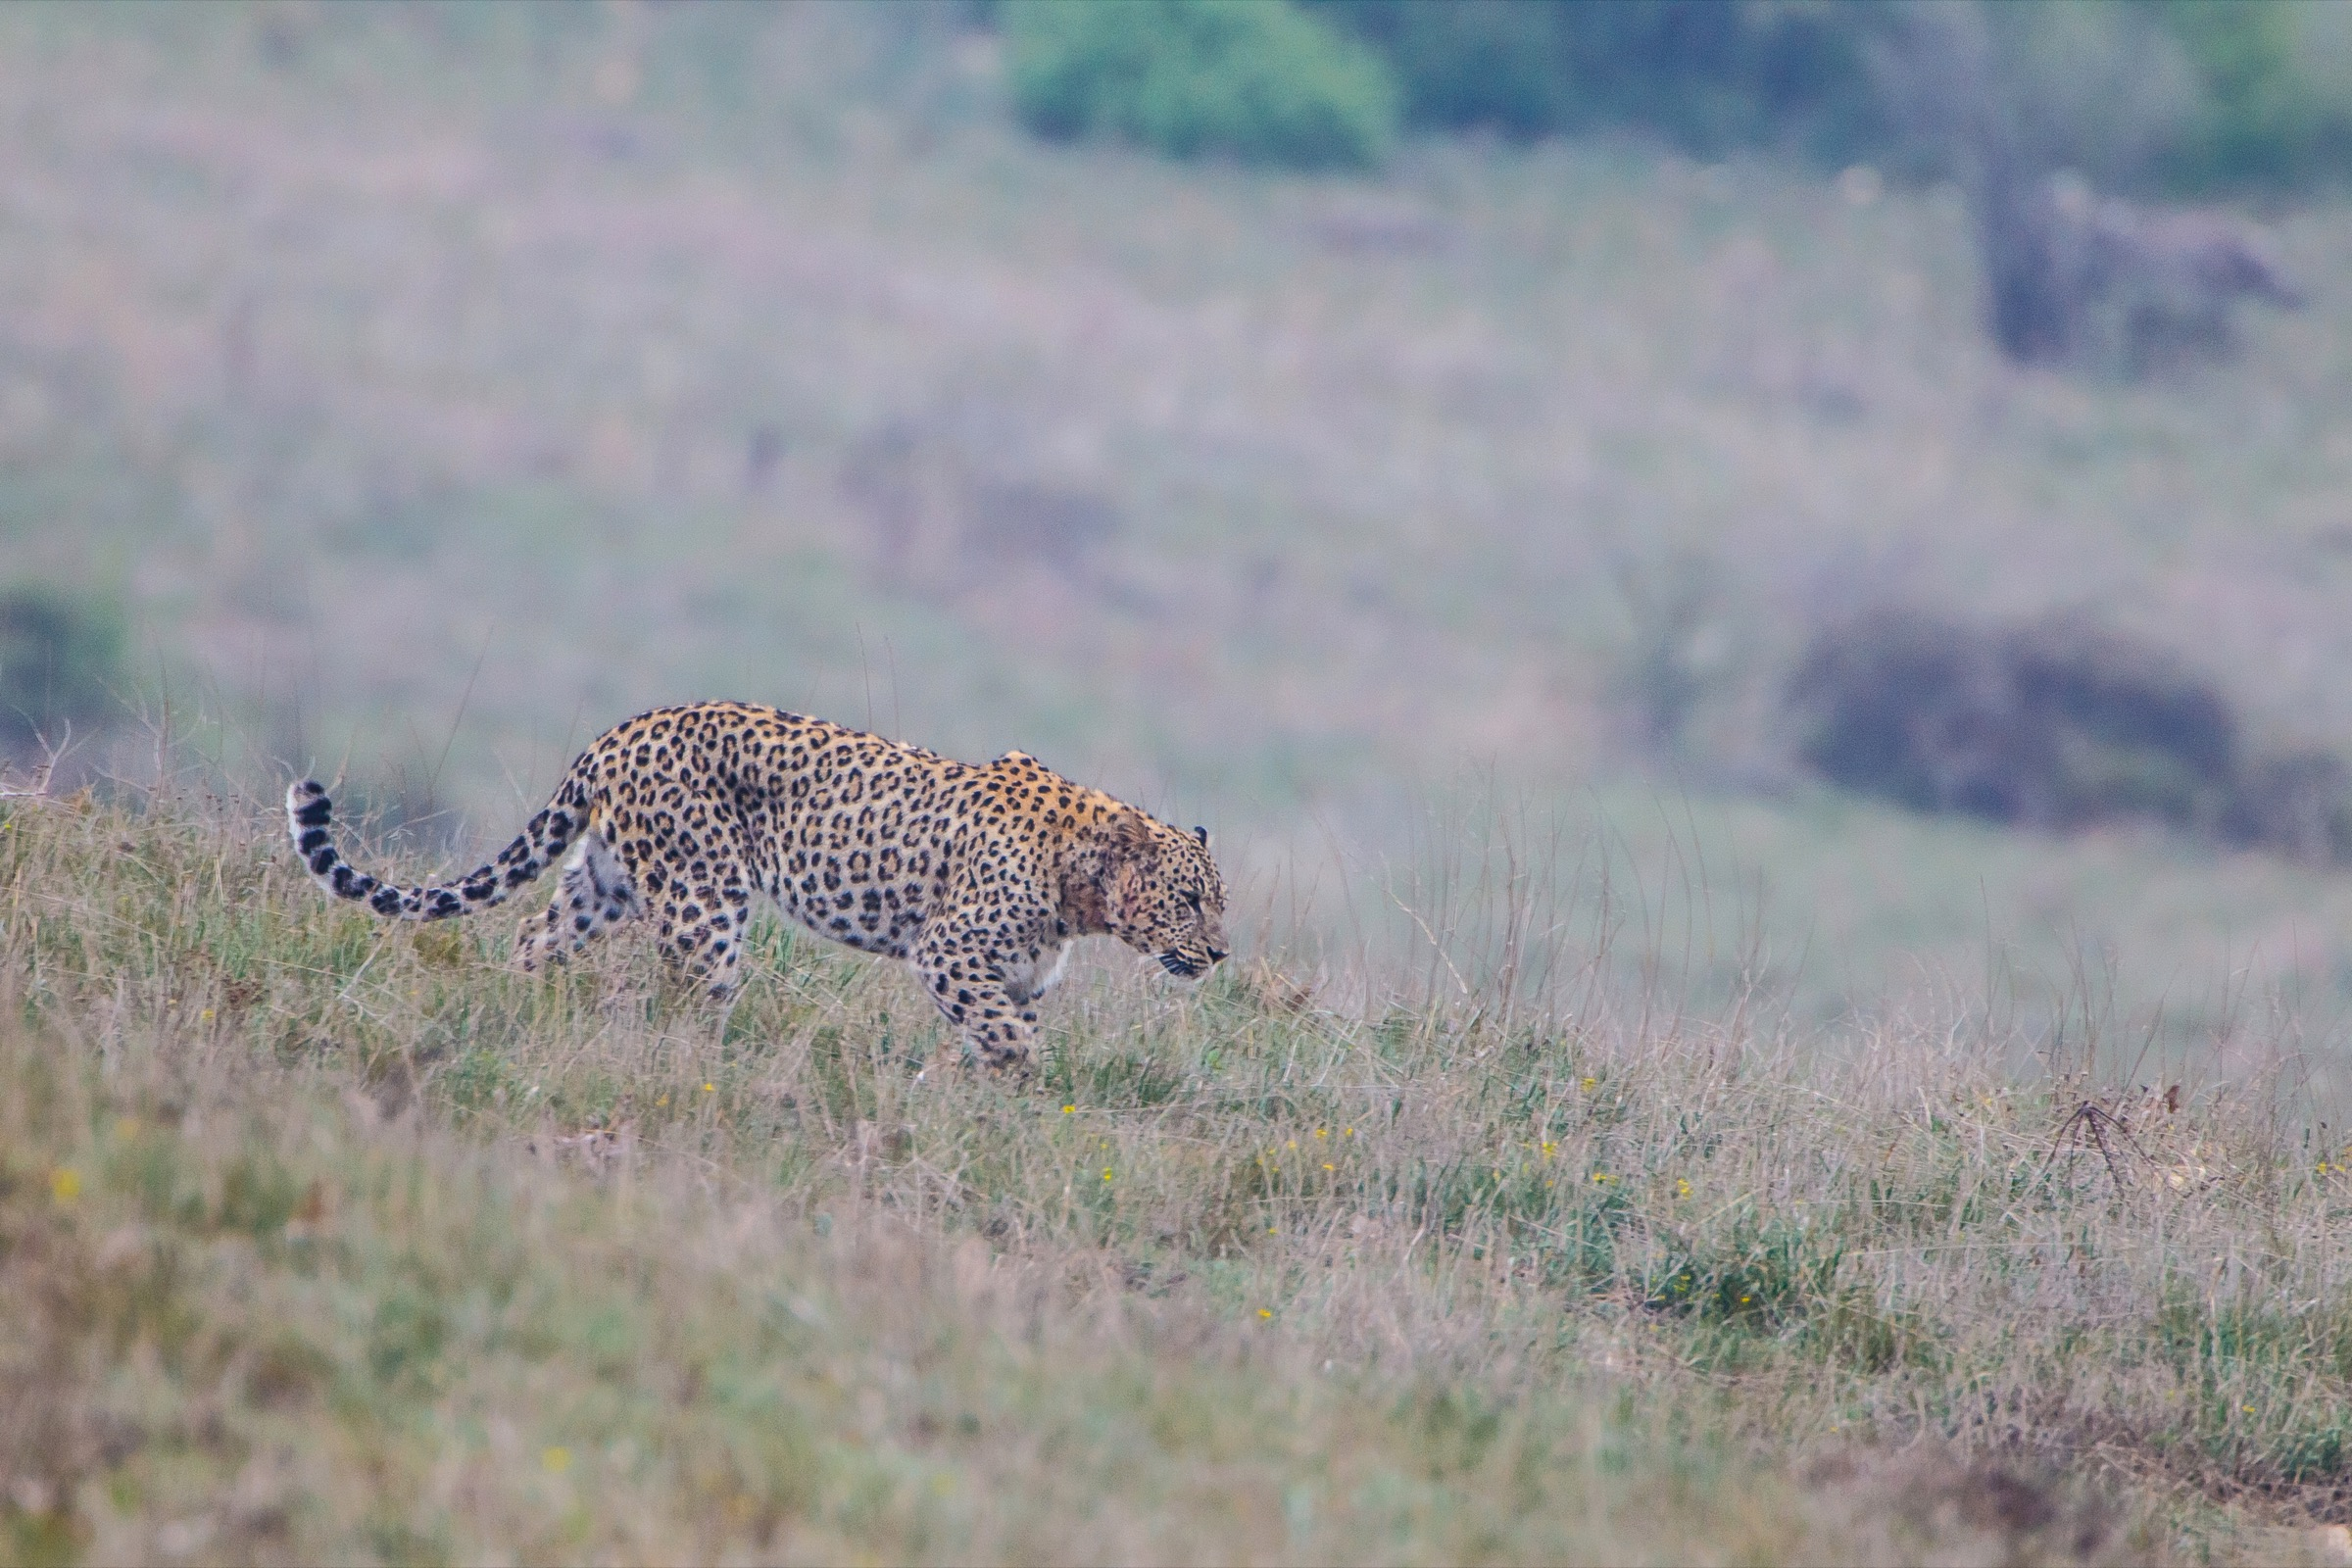 A male Persian leopard patrols its territory in Iran's Golestan National Park. Photograph by Behzad Farahanchi